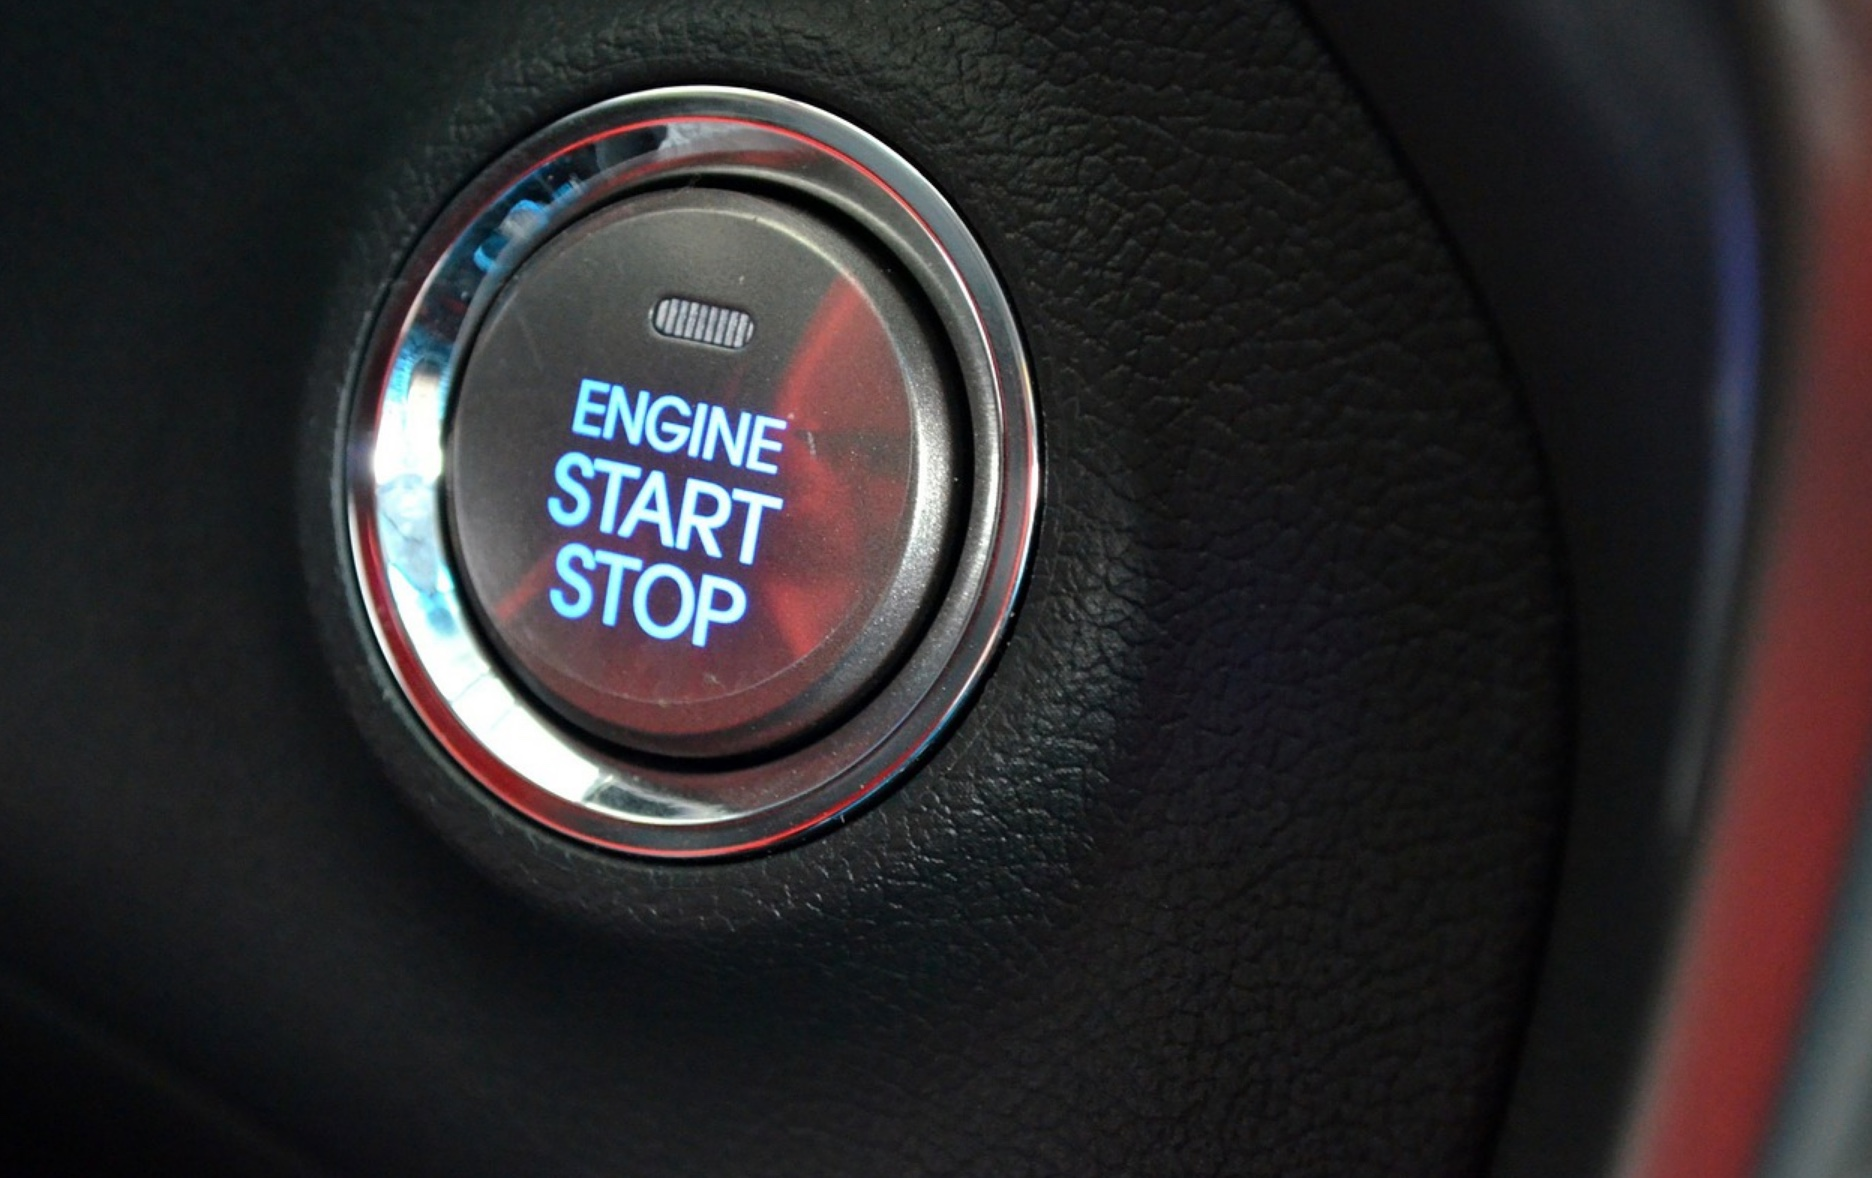 Engine button, engine repair in Murfreesboro, TN, auto mechanic for engines, tune-up, oil change, brake service and more!